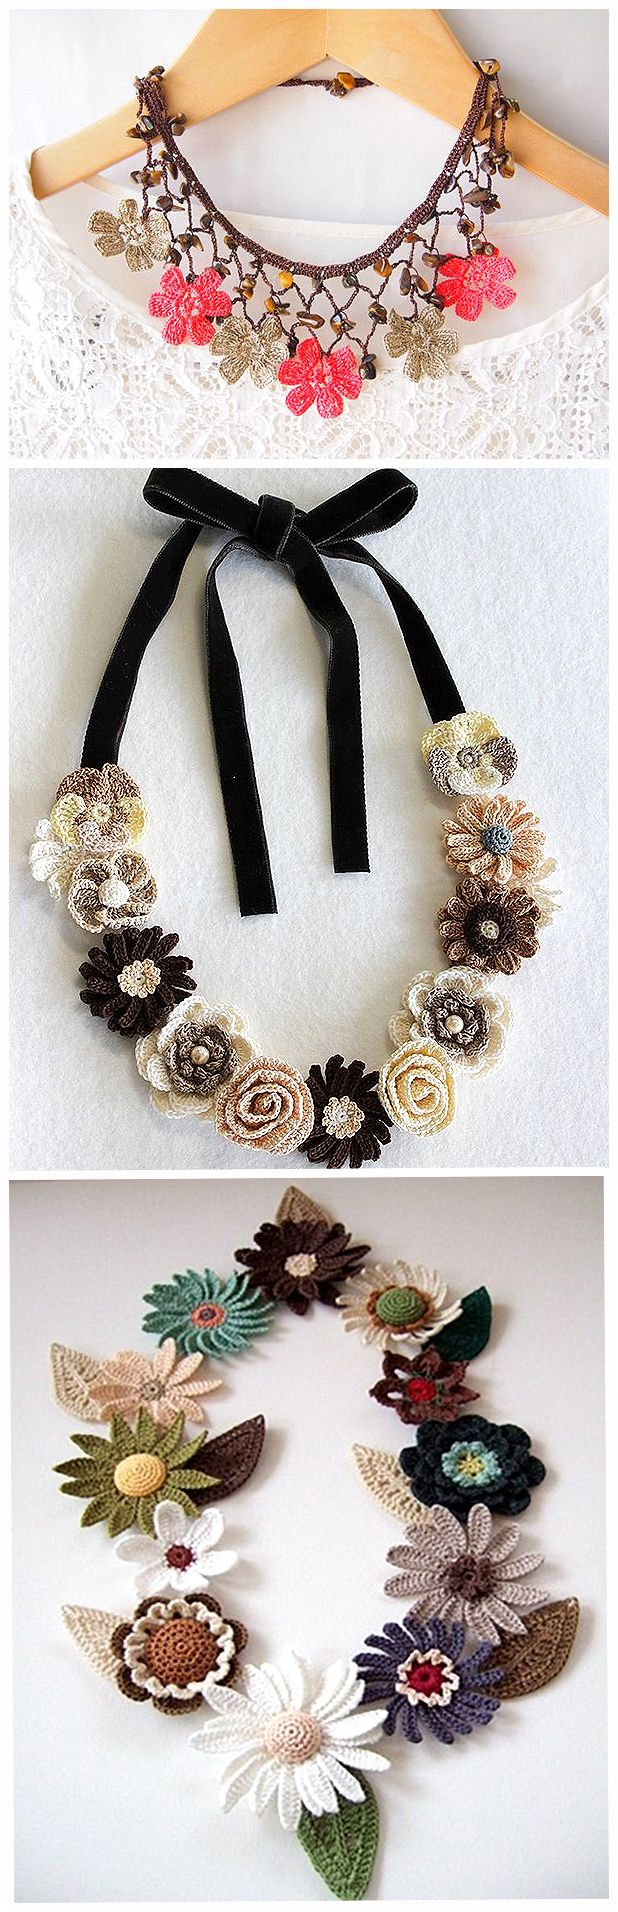 beautiful earrings.                  And here knit items included in the decoration completely different type and style of my ...